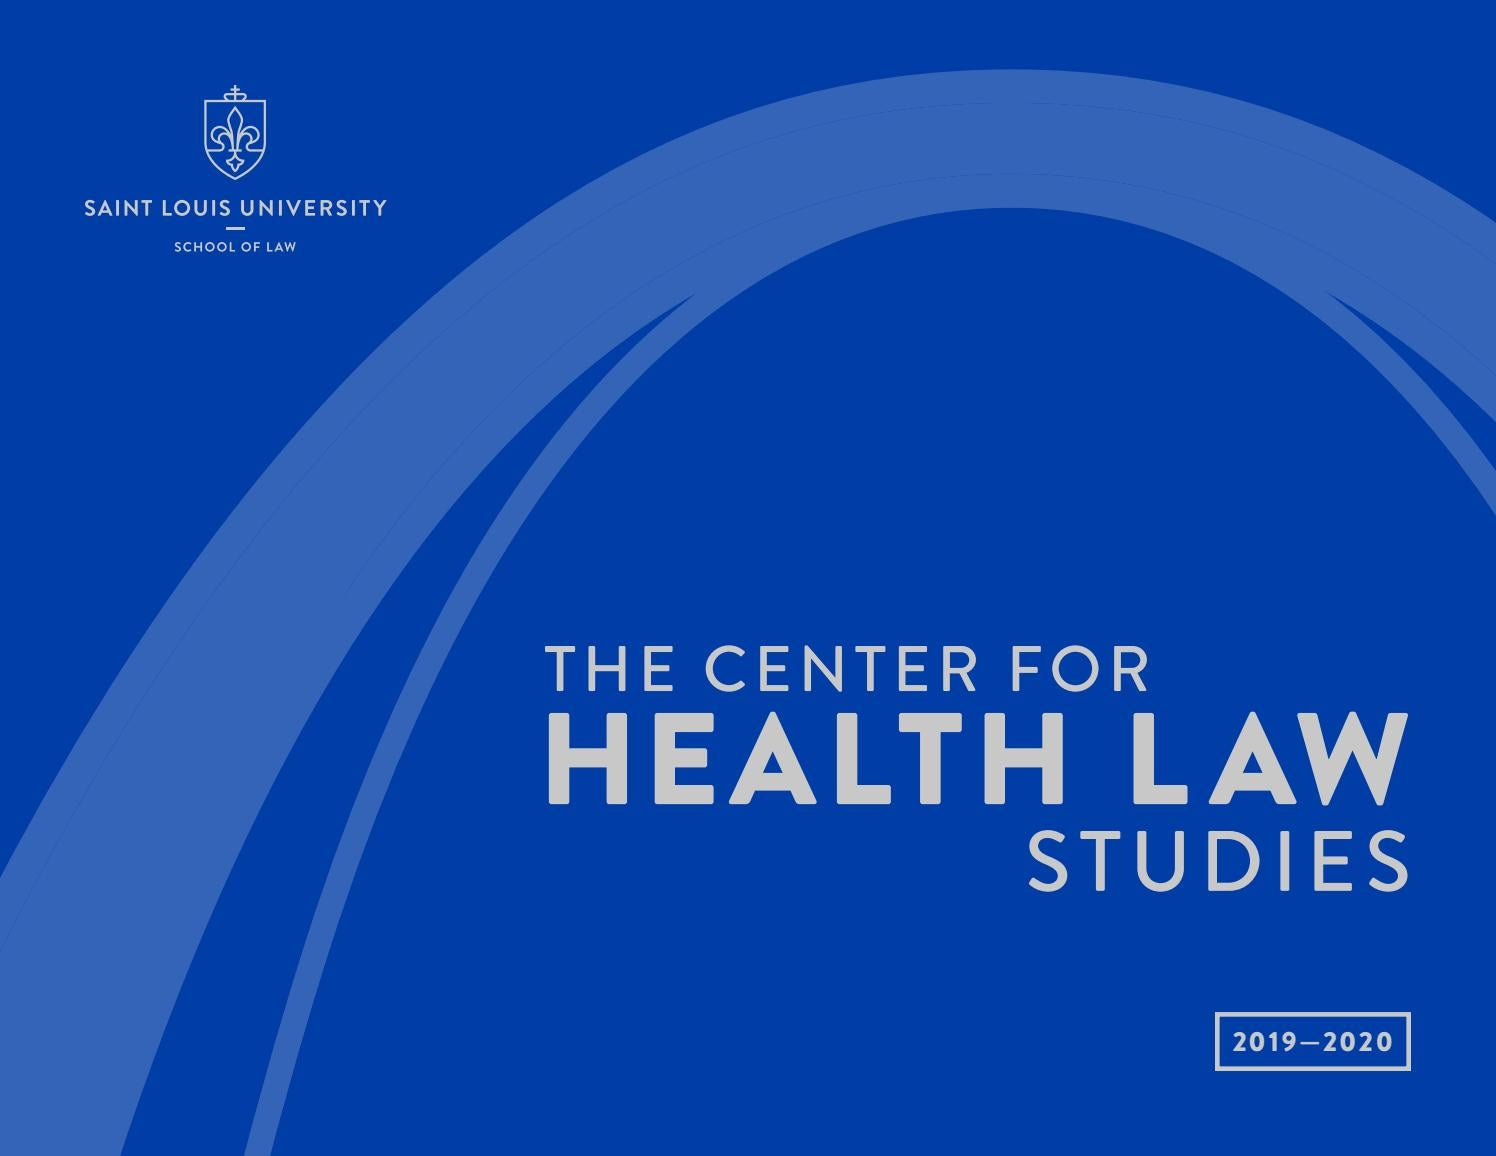 Slu Graduation 2020.The Center For Health Law Studies Slu Law 2019 20 By Slu Law